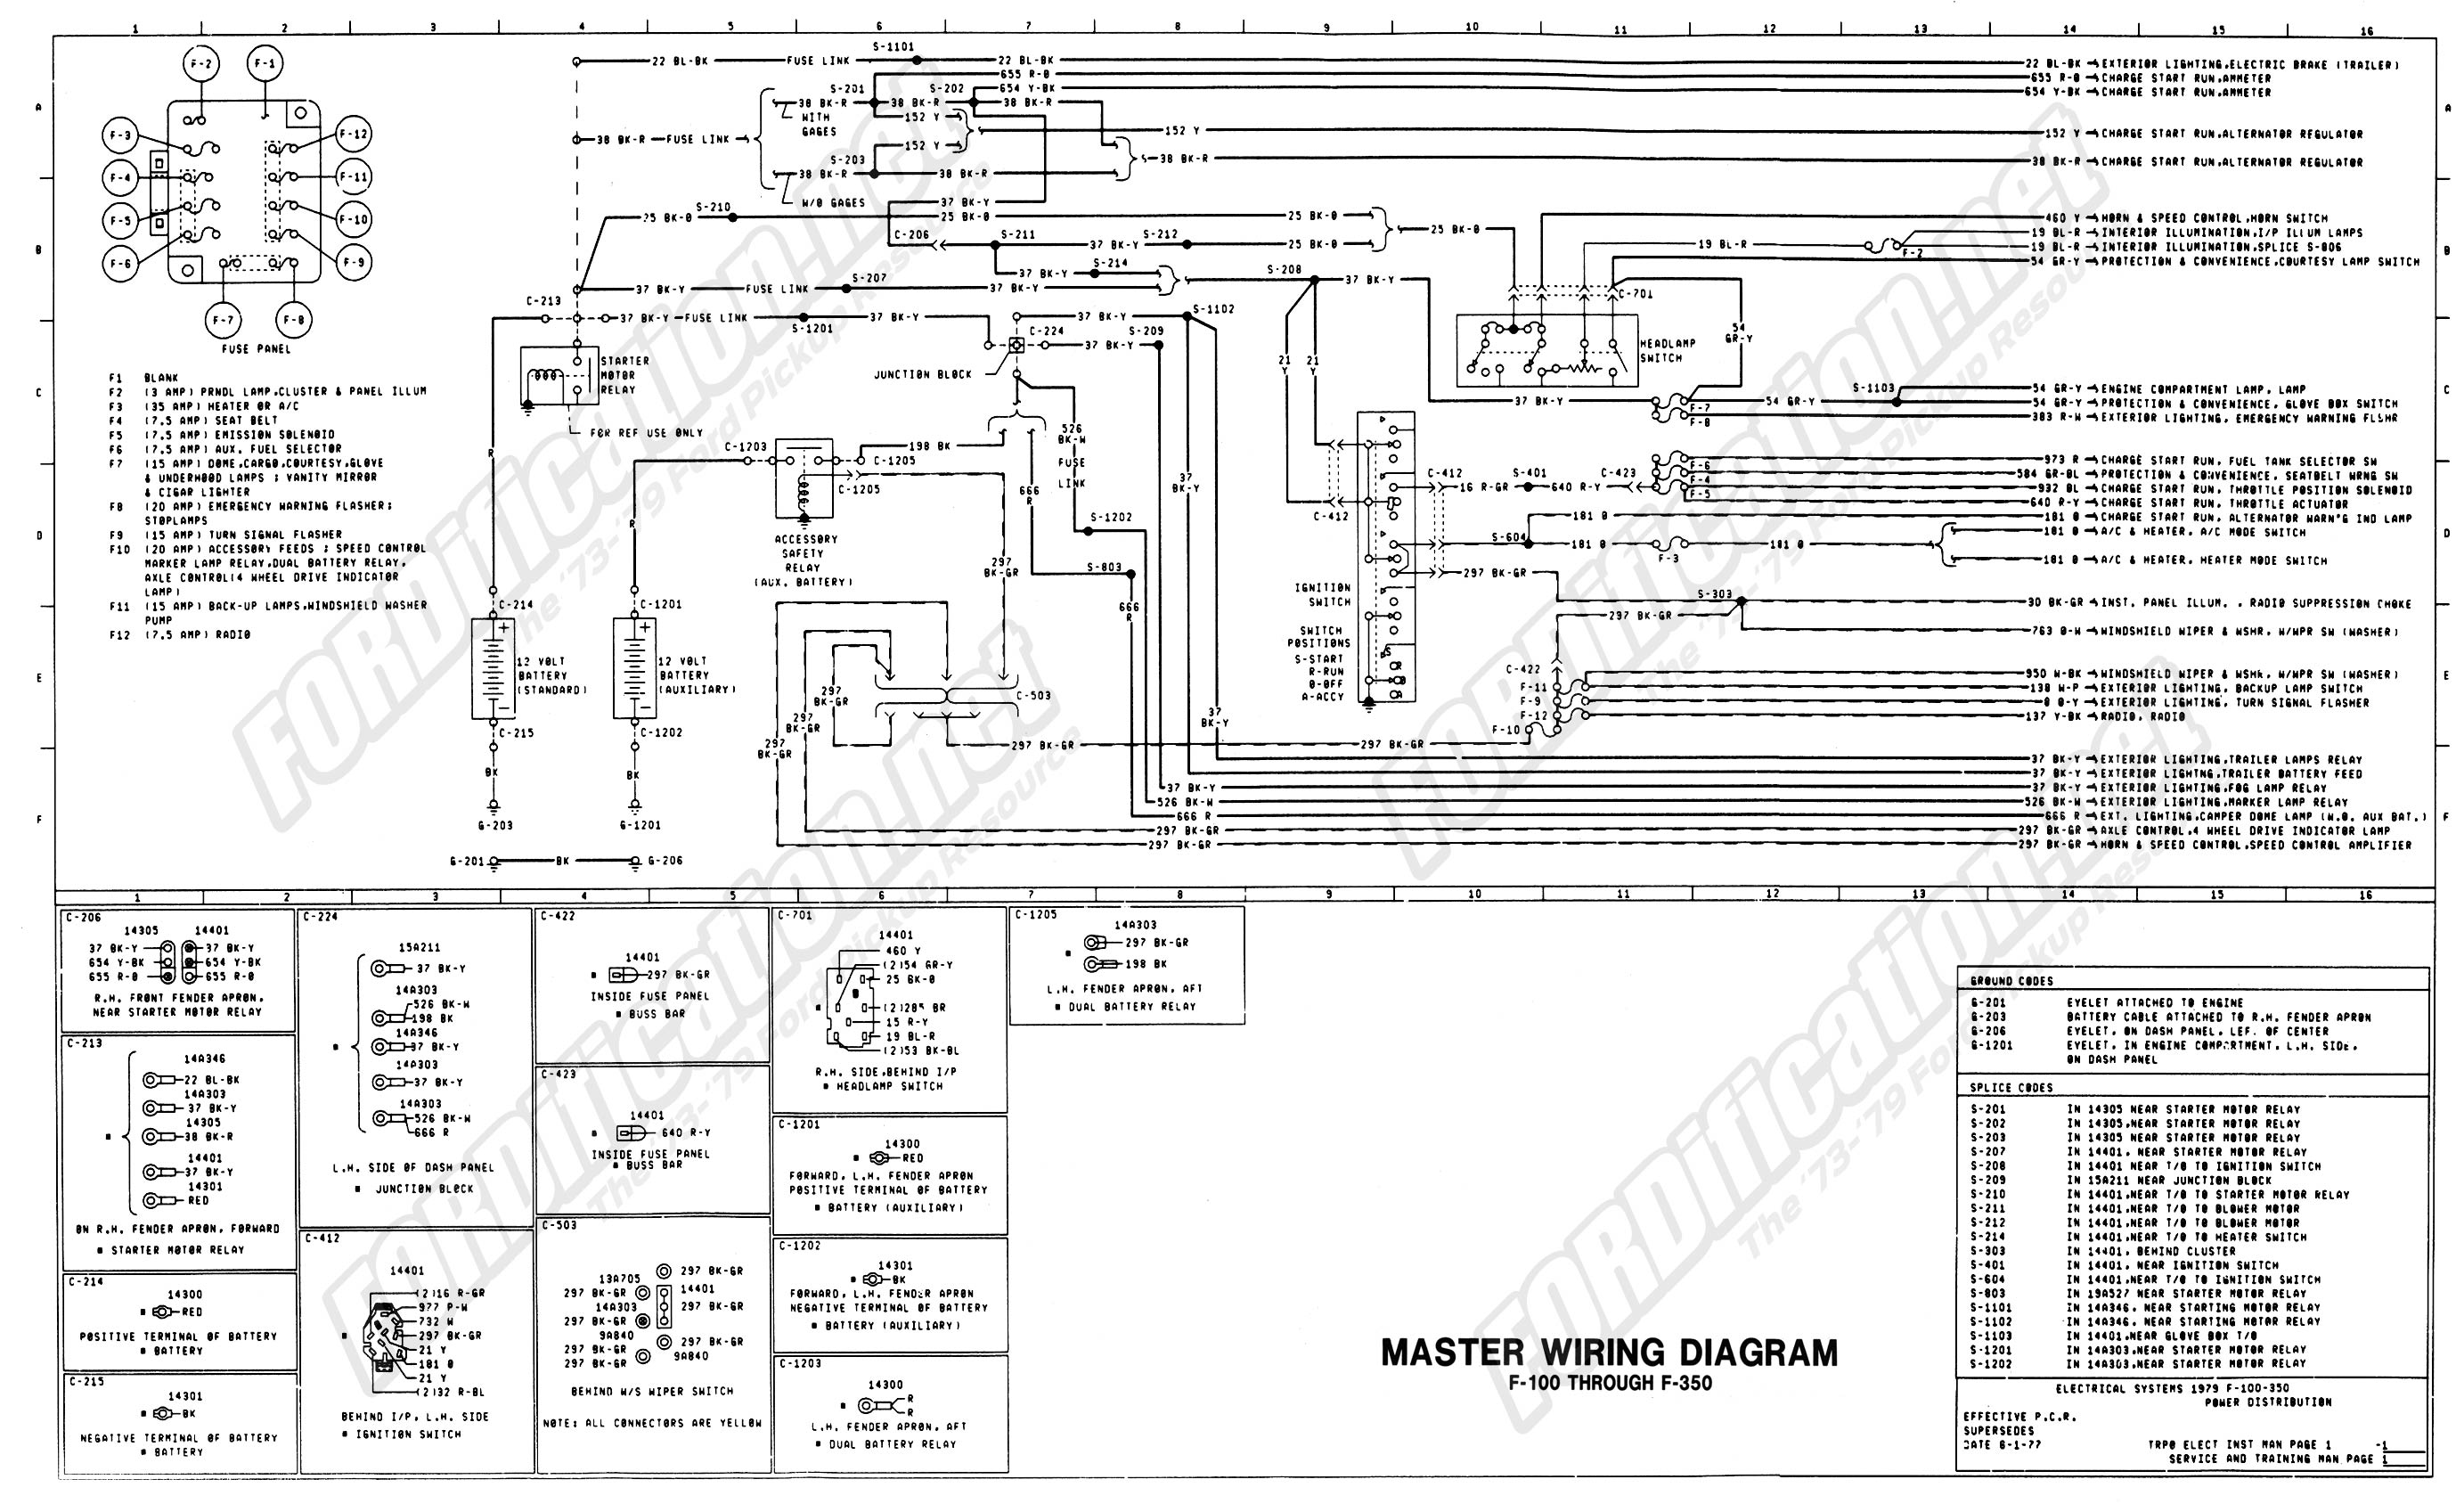 1979 f100 ignition switch wiring diagram positions? - ford truck  enthusiasts forums  ford truck enthusiasts